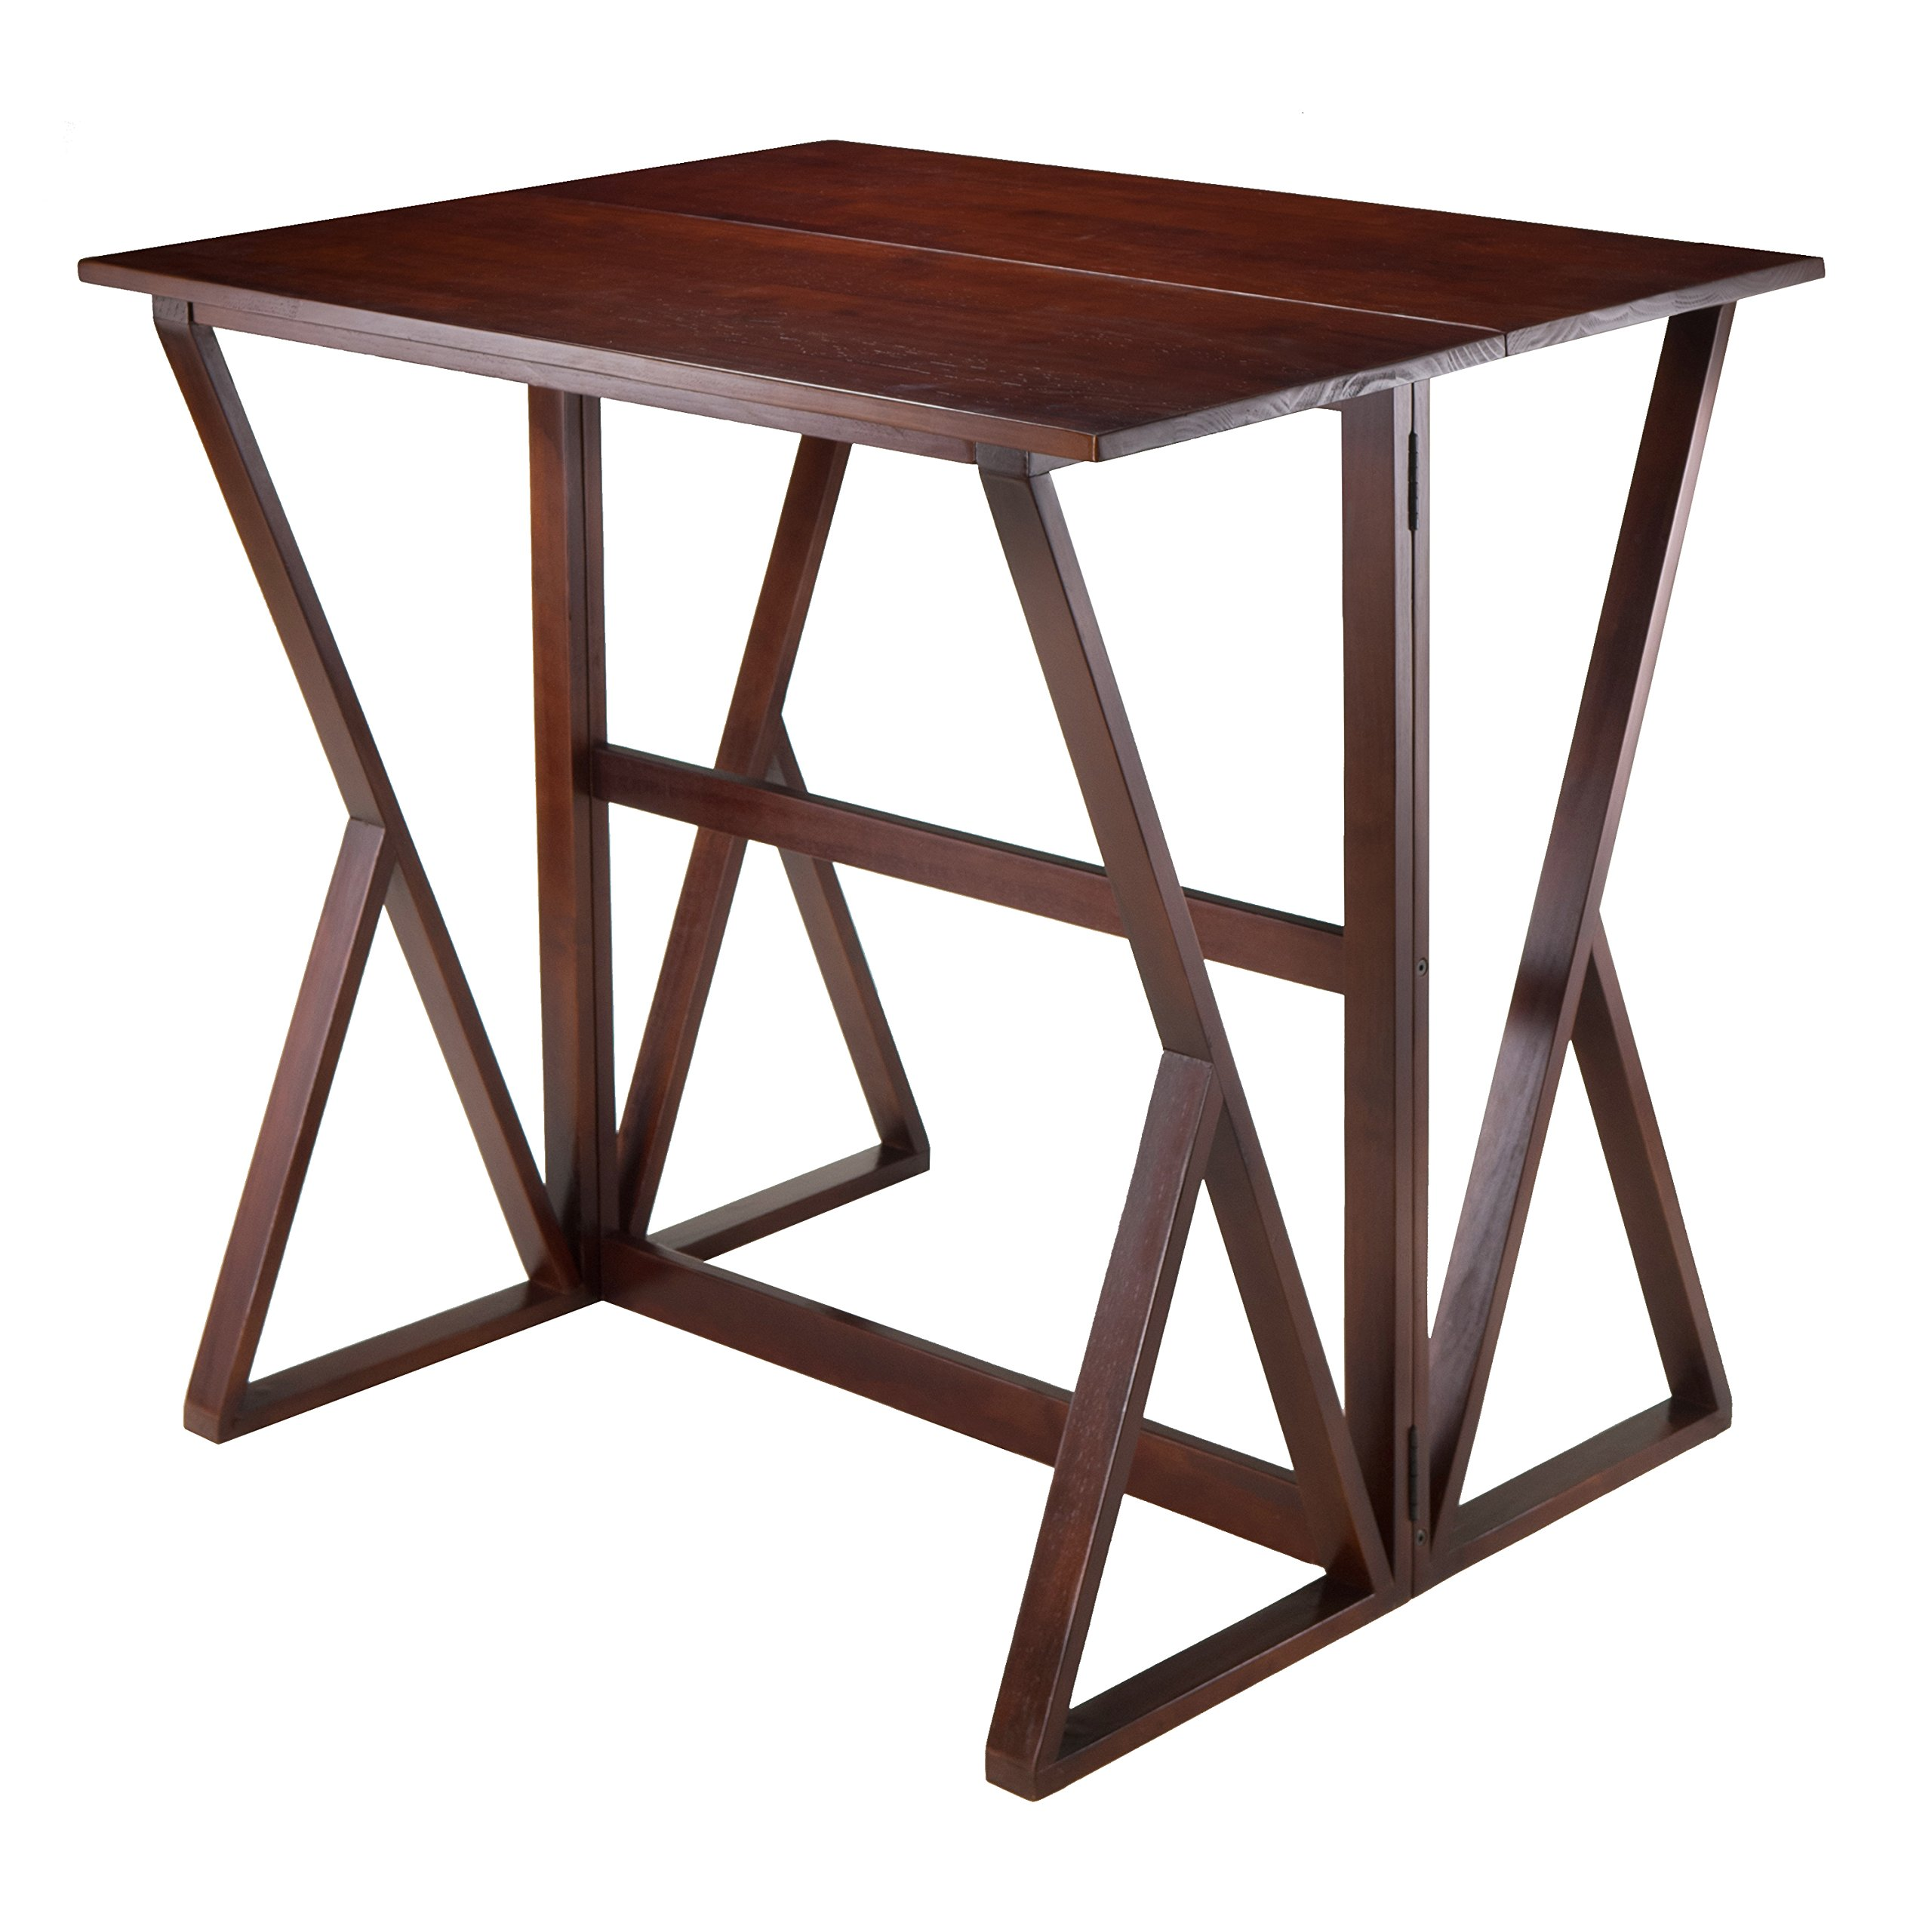 Winsome Wood Harrington Drop Leaf High Table by Winsome Wood